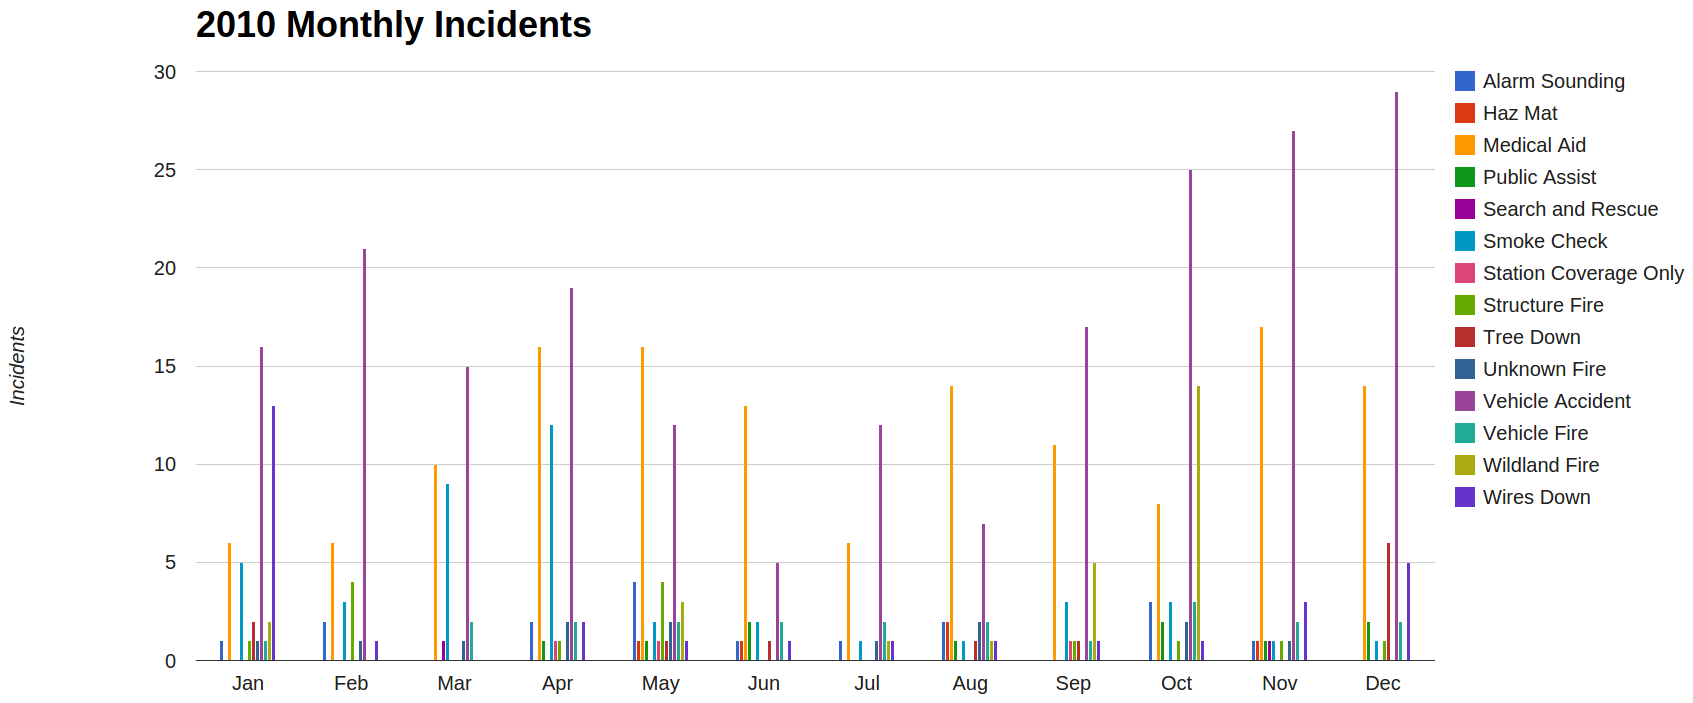 https://sites.google.com/a/lomaprietafire.org/loma-prieta-fire-rescue/home/incident-statistics/2010-incident-response-overview/2010_monthly_incidents.png